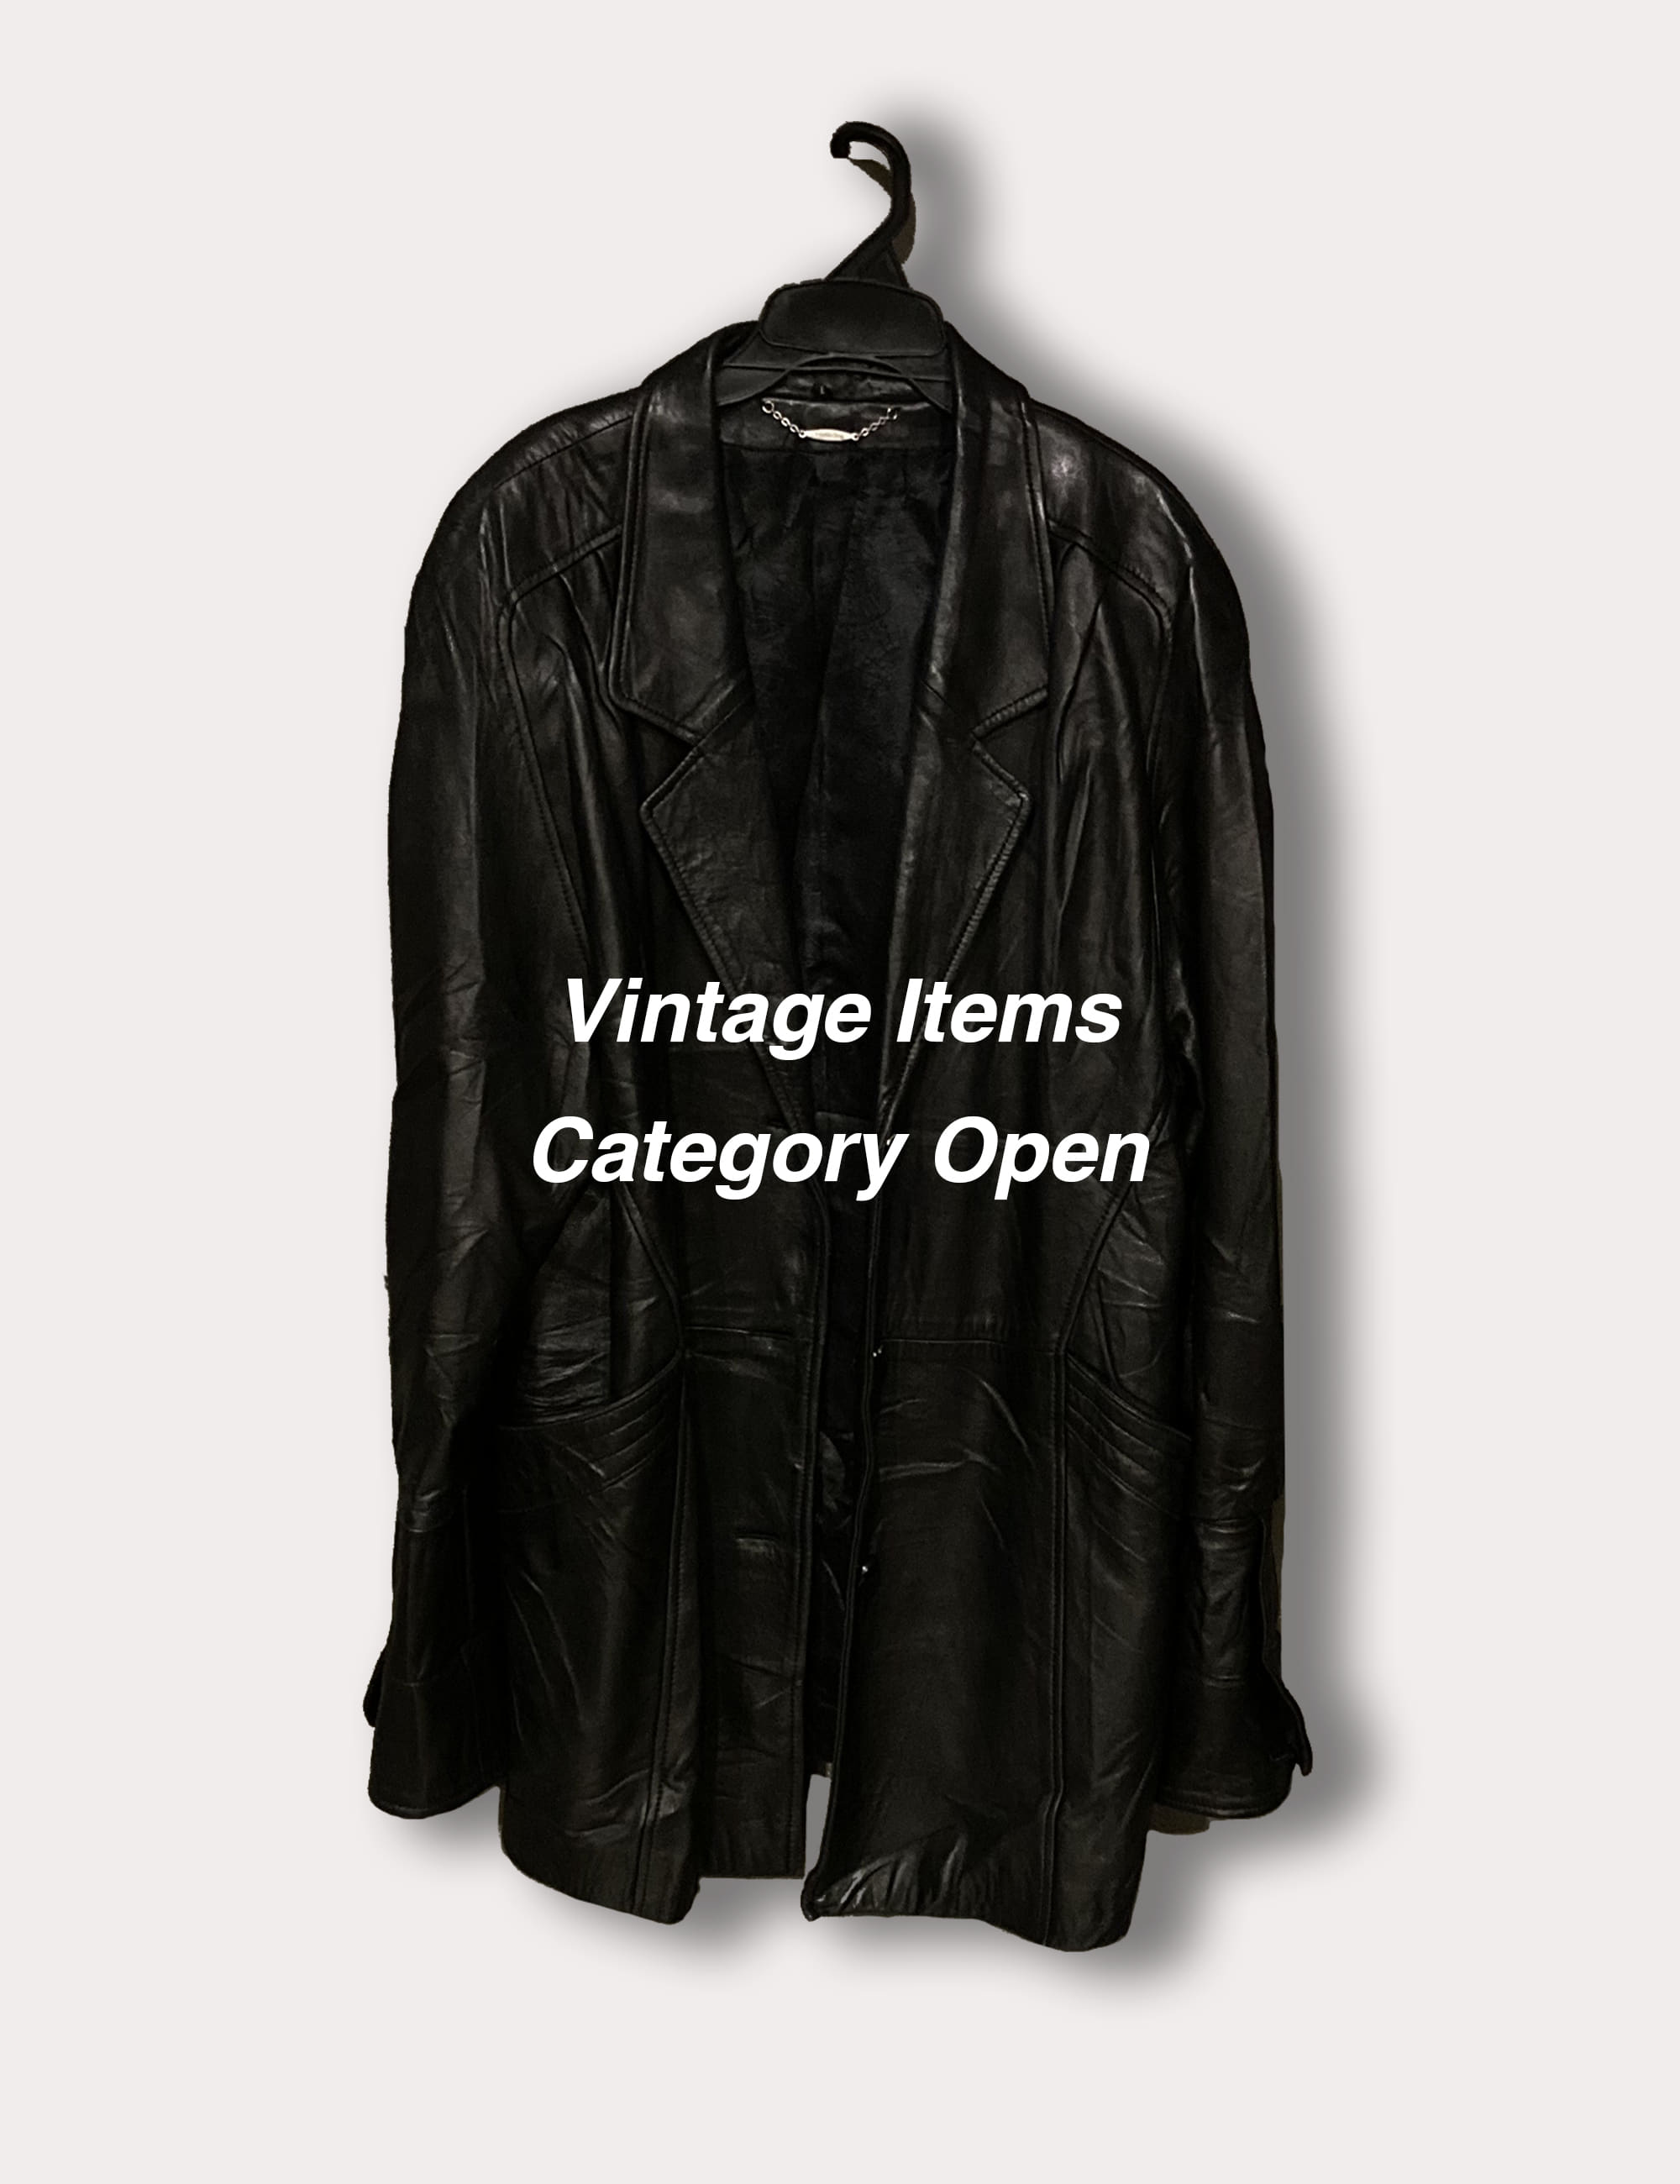 VINTAGE ITEMS CATEGORY OPEN